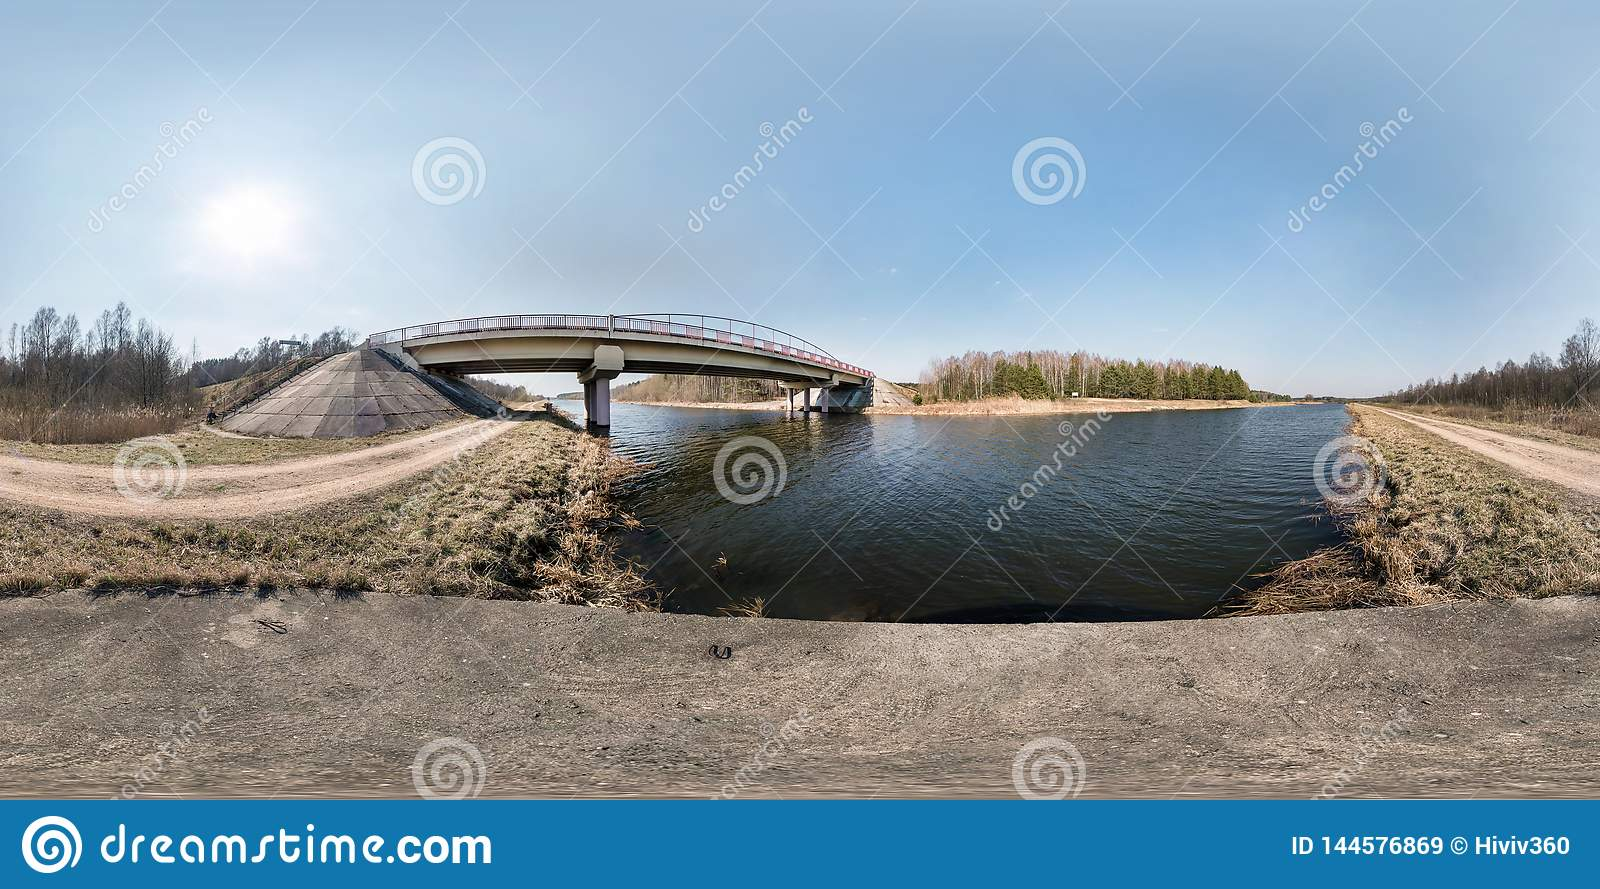 Full seamless spherical hdri panorama 360 degrees angle view bridge on the river in sunny day. background in equirectangular